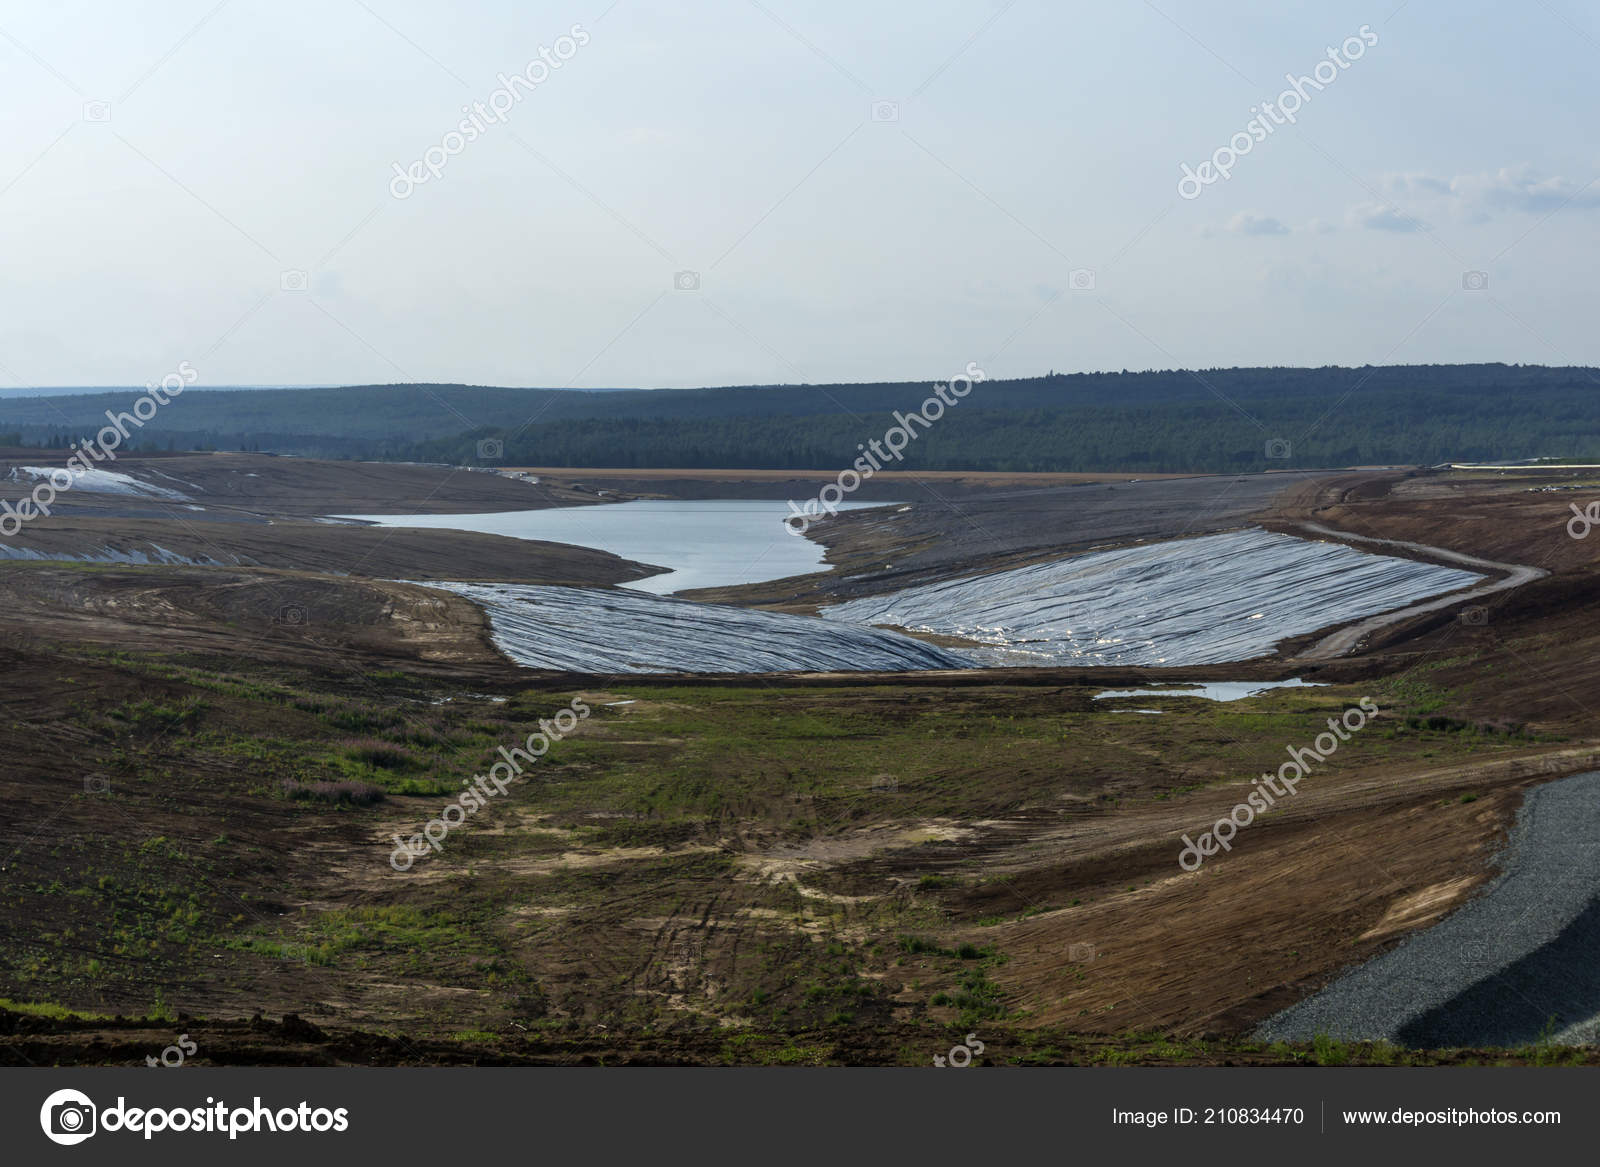 View Industrial Tailing Pond Construction Landscape